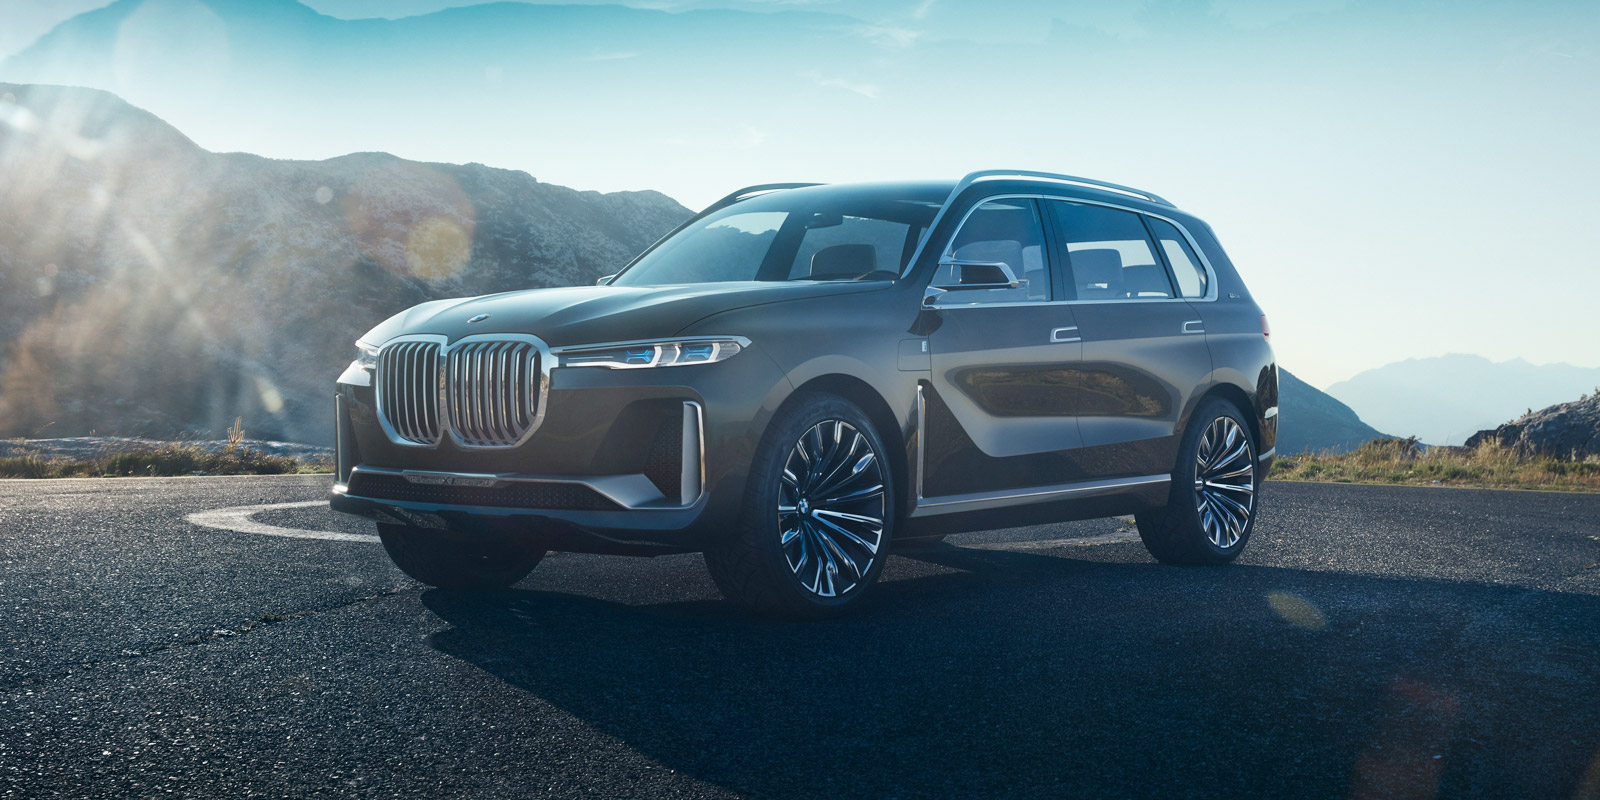 2018 Bmw X7 Interior New Car Release Date And Review